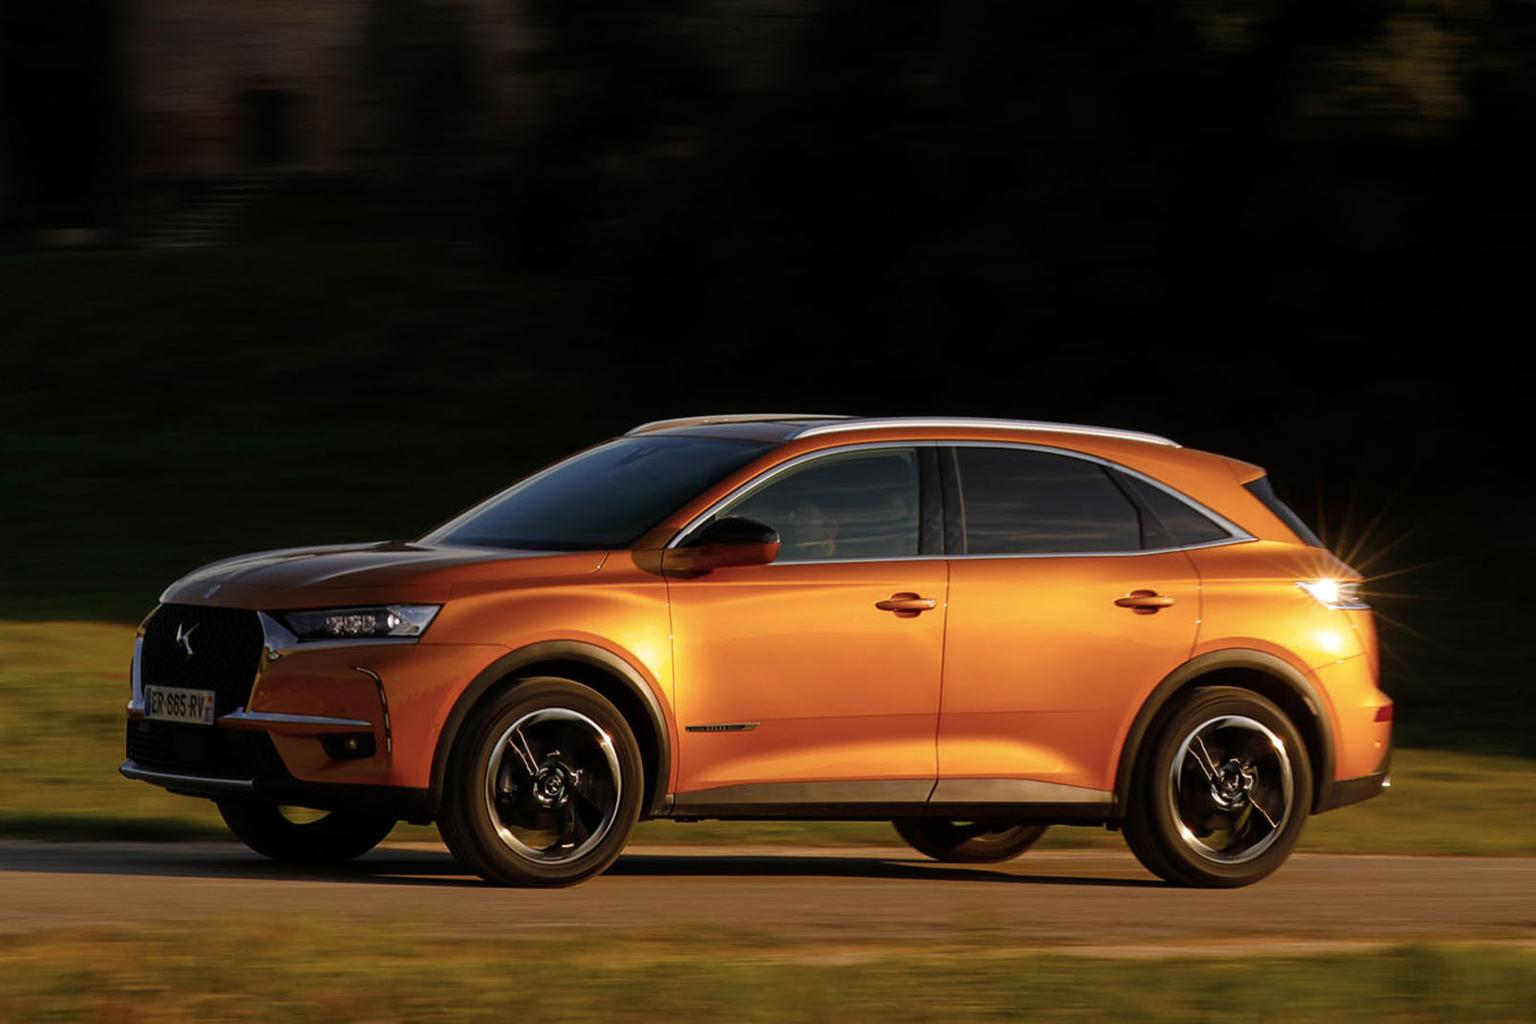 2018 DS 7 Crossback Puretech 225 review – price, specs and release date